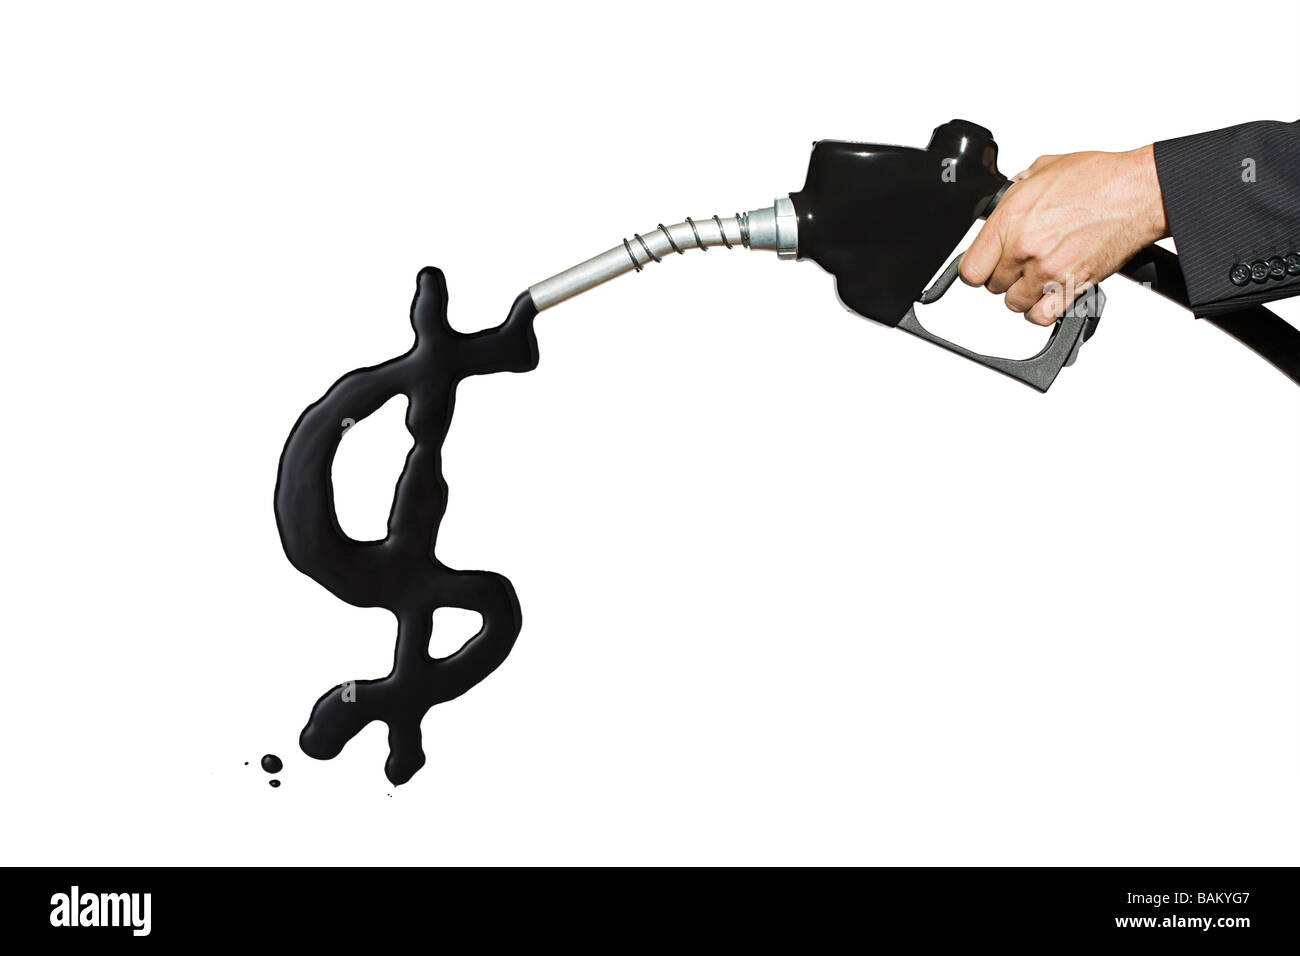 Dollar sign in gasoline - Stock Image